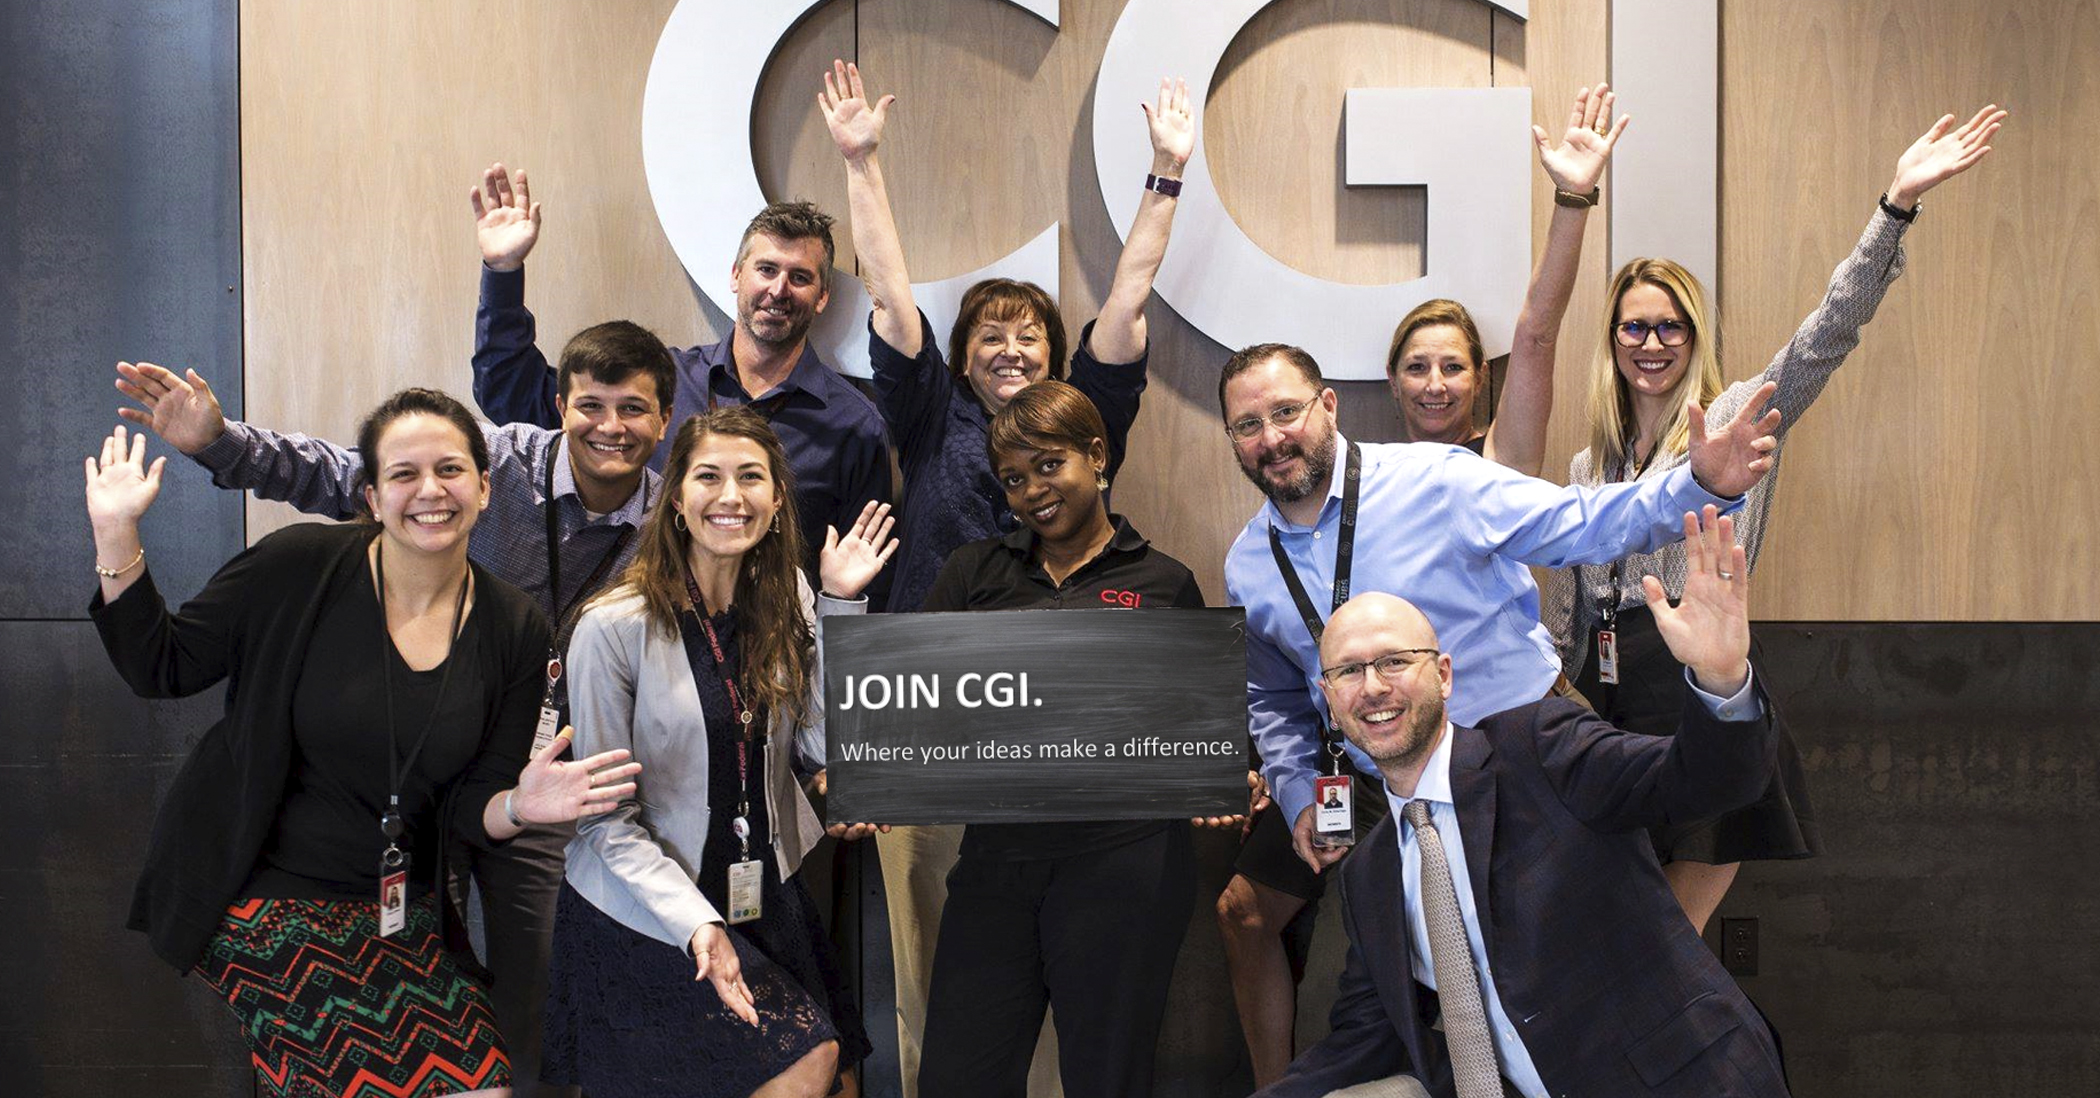 A picture of the CGI team waving and smiling